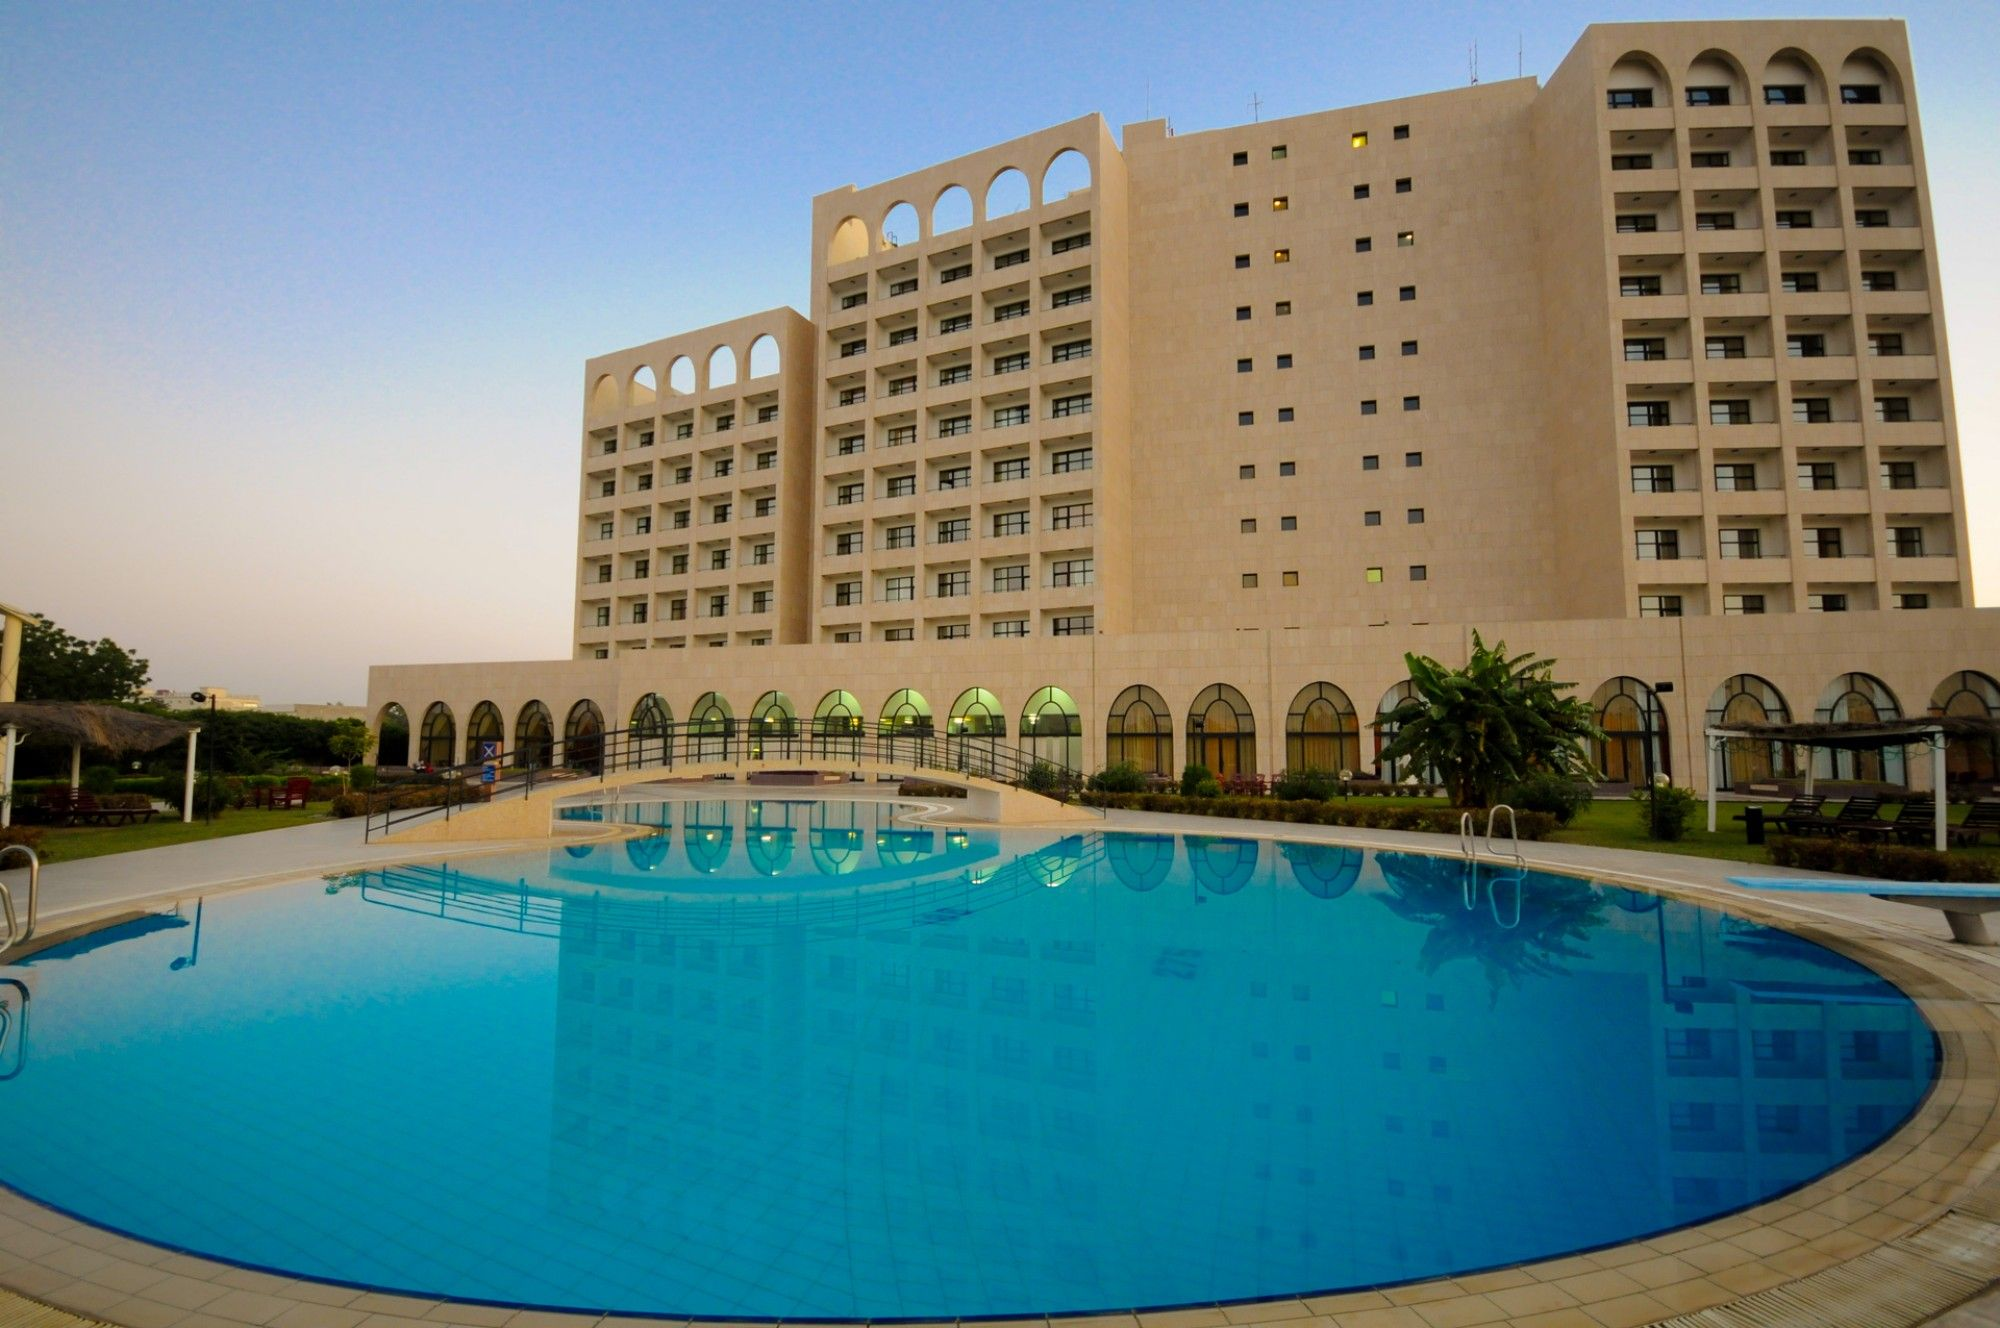 Selection of our Images, Photos & Logos - Hotel N'Djamena - Kempinski | Kempinski Hotel N'Djamena